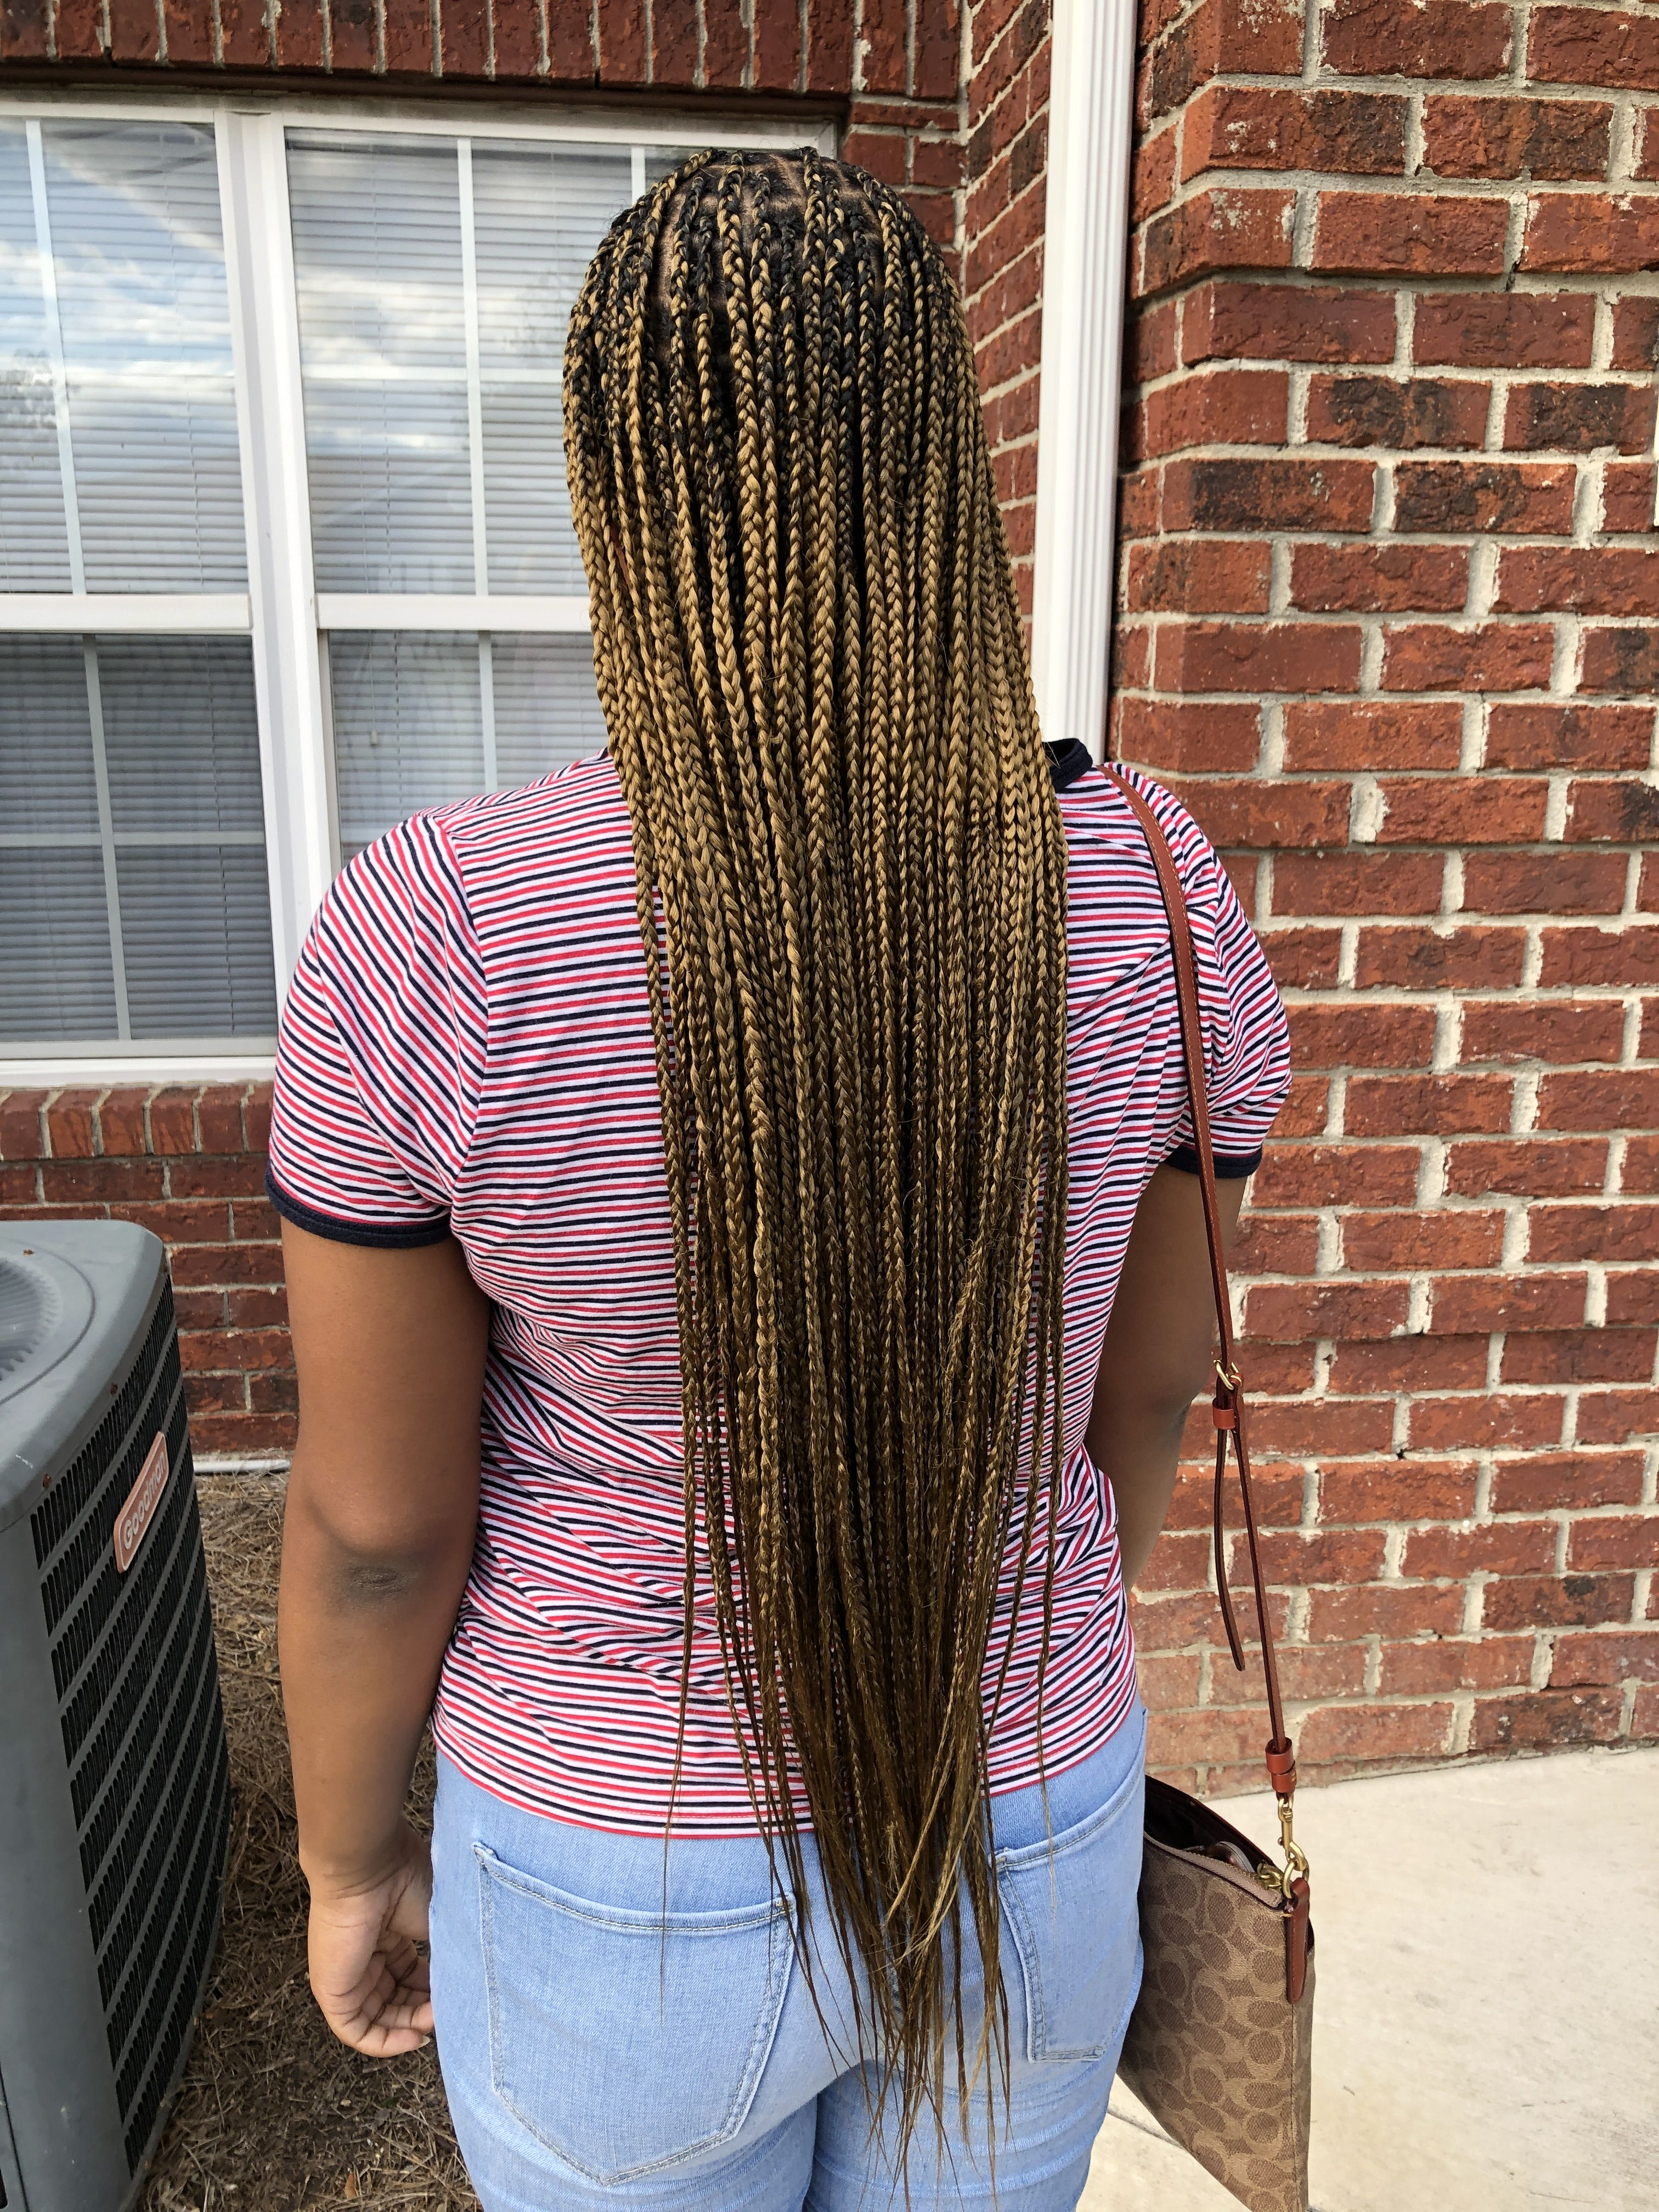 Honey Blonde Knotless Braids On Black Woman Rahstyles Honey Blonde Blonde Box Braids Blonde Dreads Clients have the option to style. honey blonde knotless braids on black